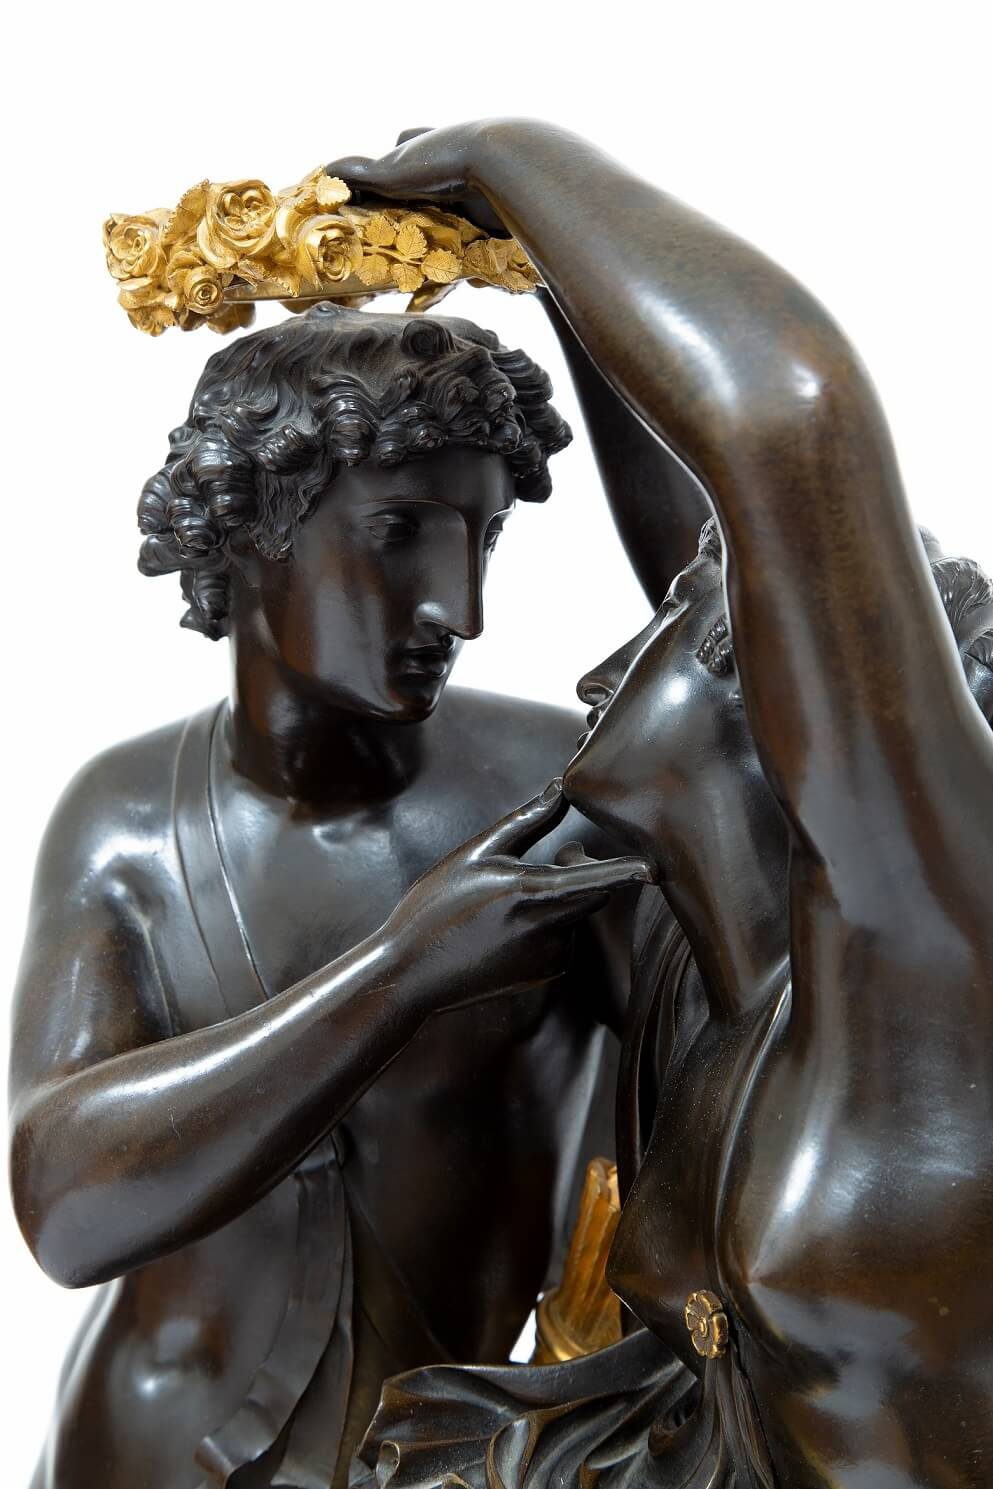 French-Empire-ormolu-gilt-bronze-patinated-sculptural-antique-mantel-clock-michallon-Galle-amor-psyche-10